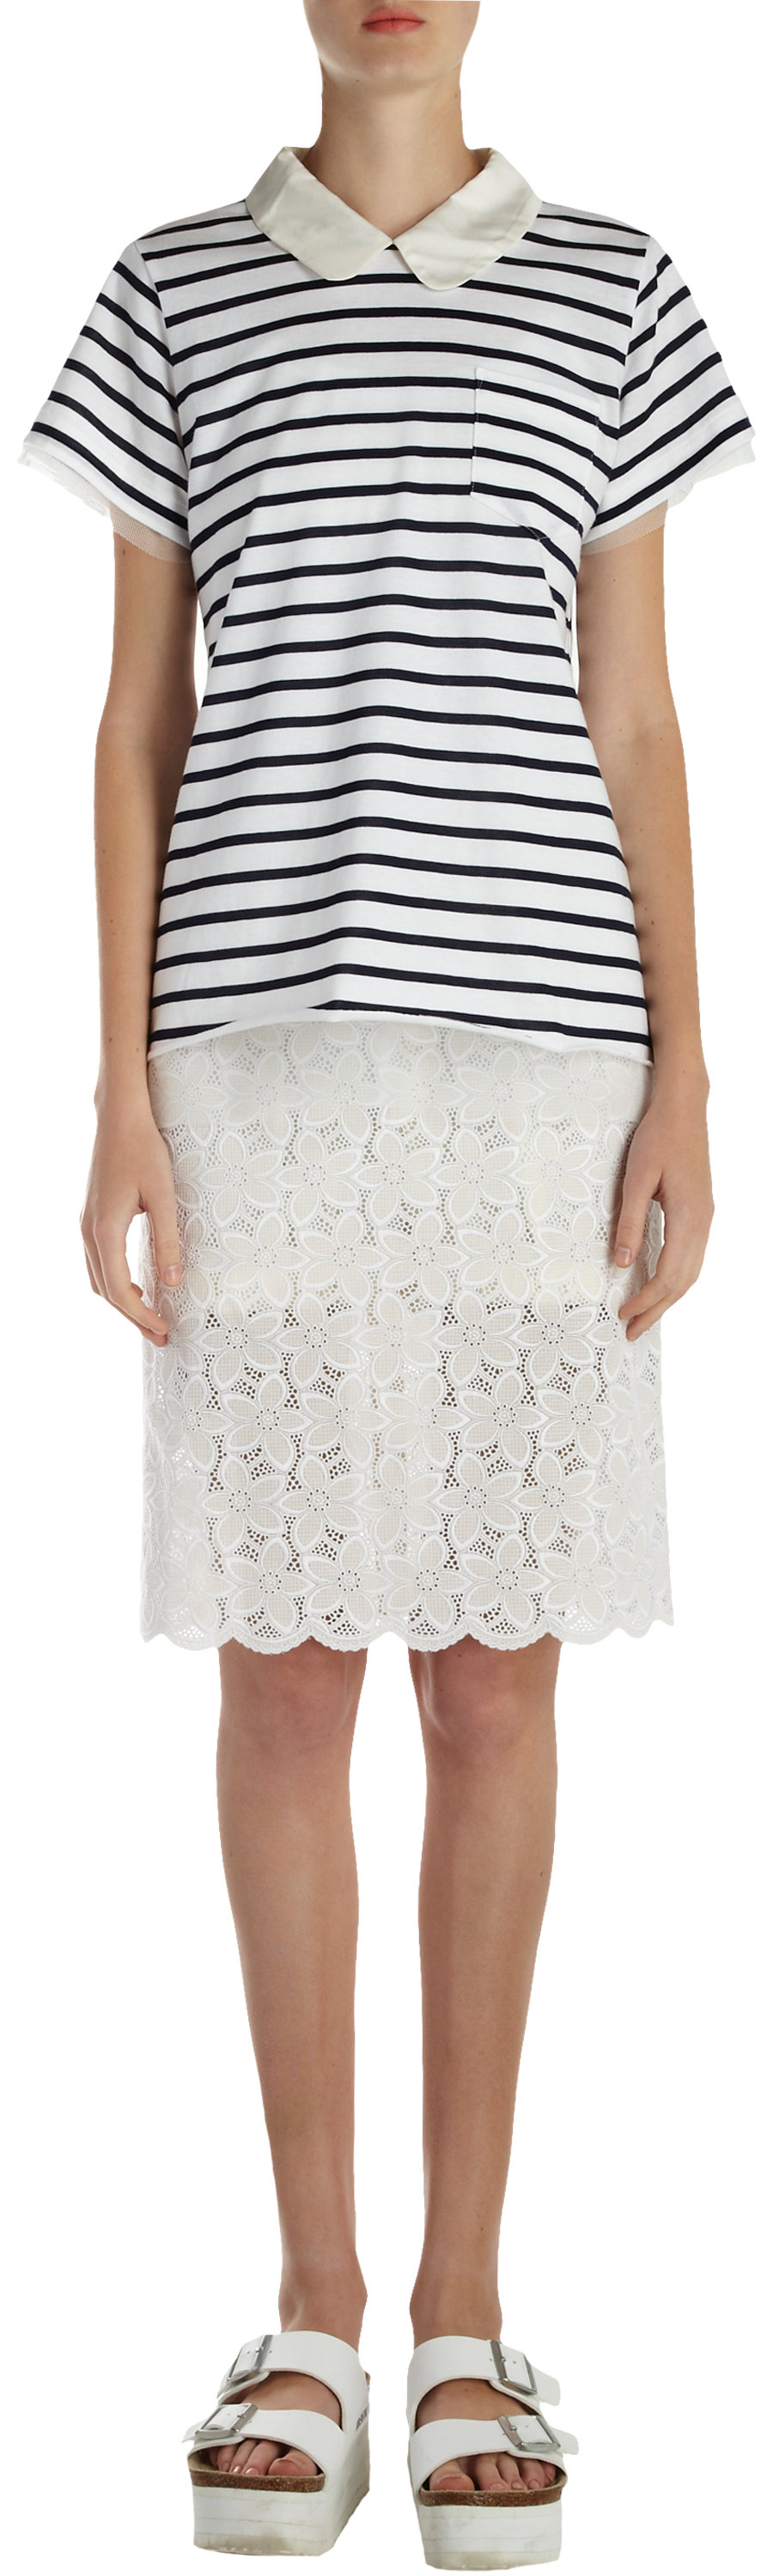 Because of this, we rounded up eight new ways to wear white lace this summer, and threw in a few shopping suggestions for good measure. Scroll through for these easy outfit formulas, and be sure to share how you wear white lace in the comments below! Pencil Skirt + Large Florals. Pinterest Photo: John Lamparski/WireImage. On Jamie Chung.